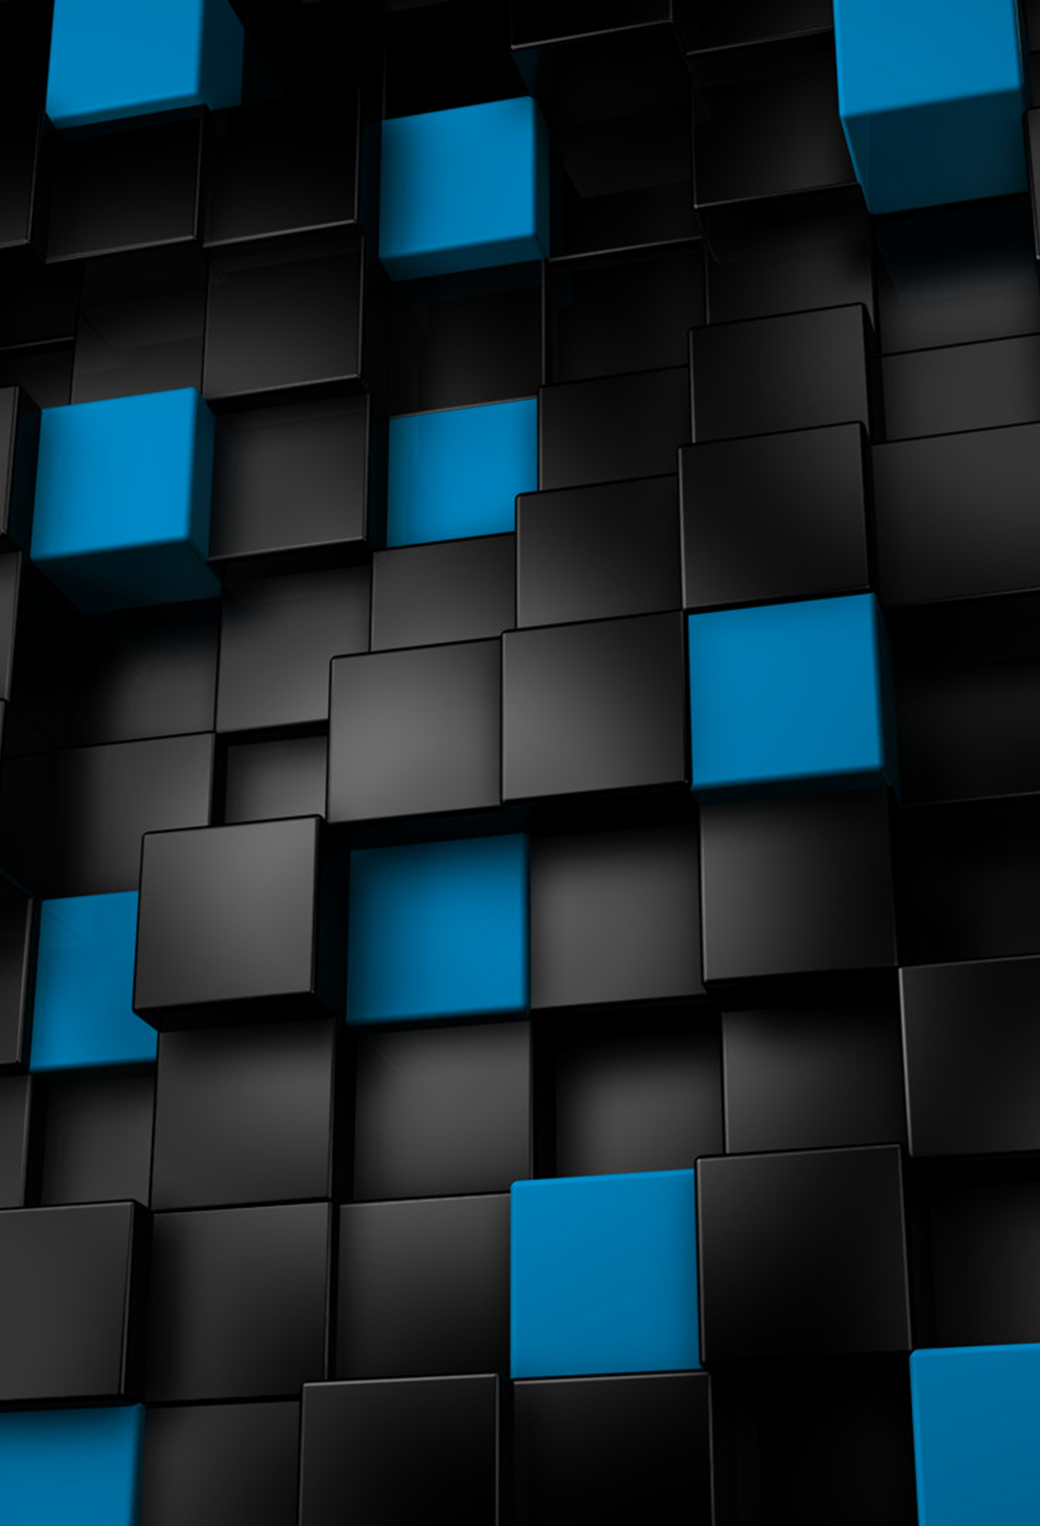 Abstract Blue and Black Cubes 3Wallpapers iPhone Parallax Abstract Blue and Black Cubes